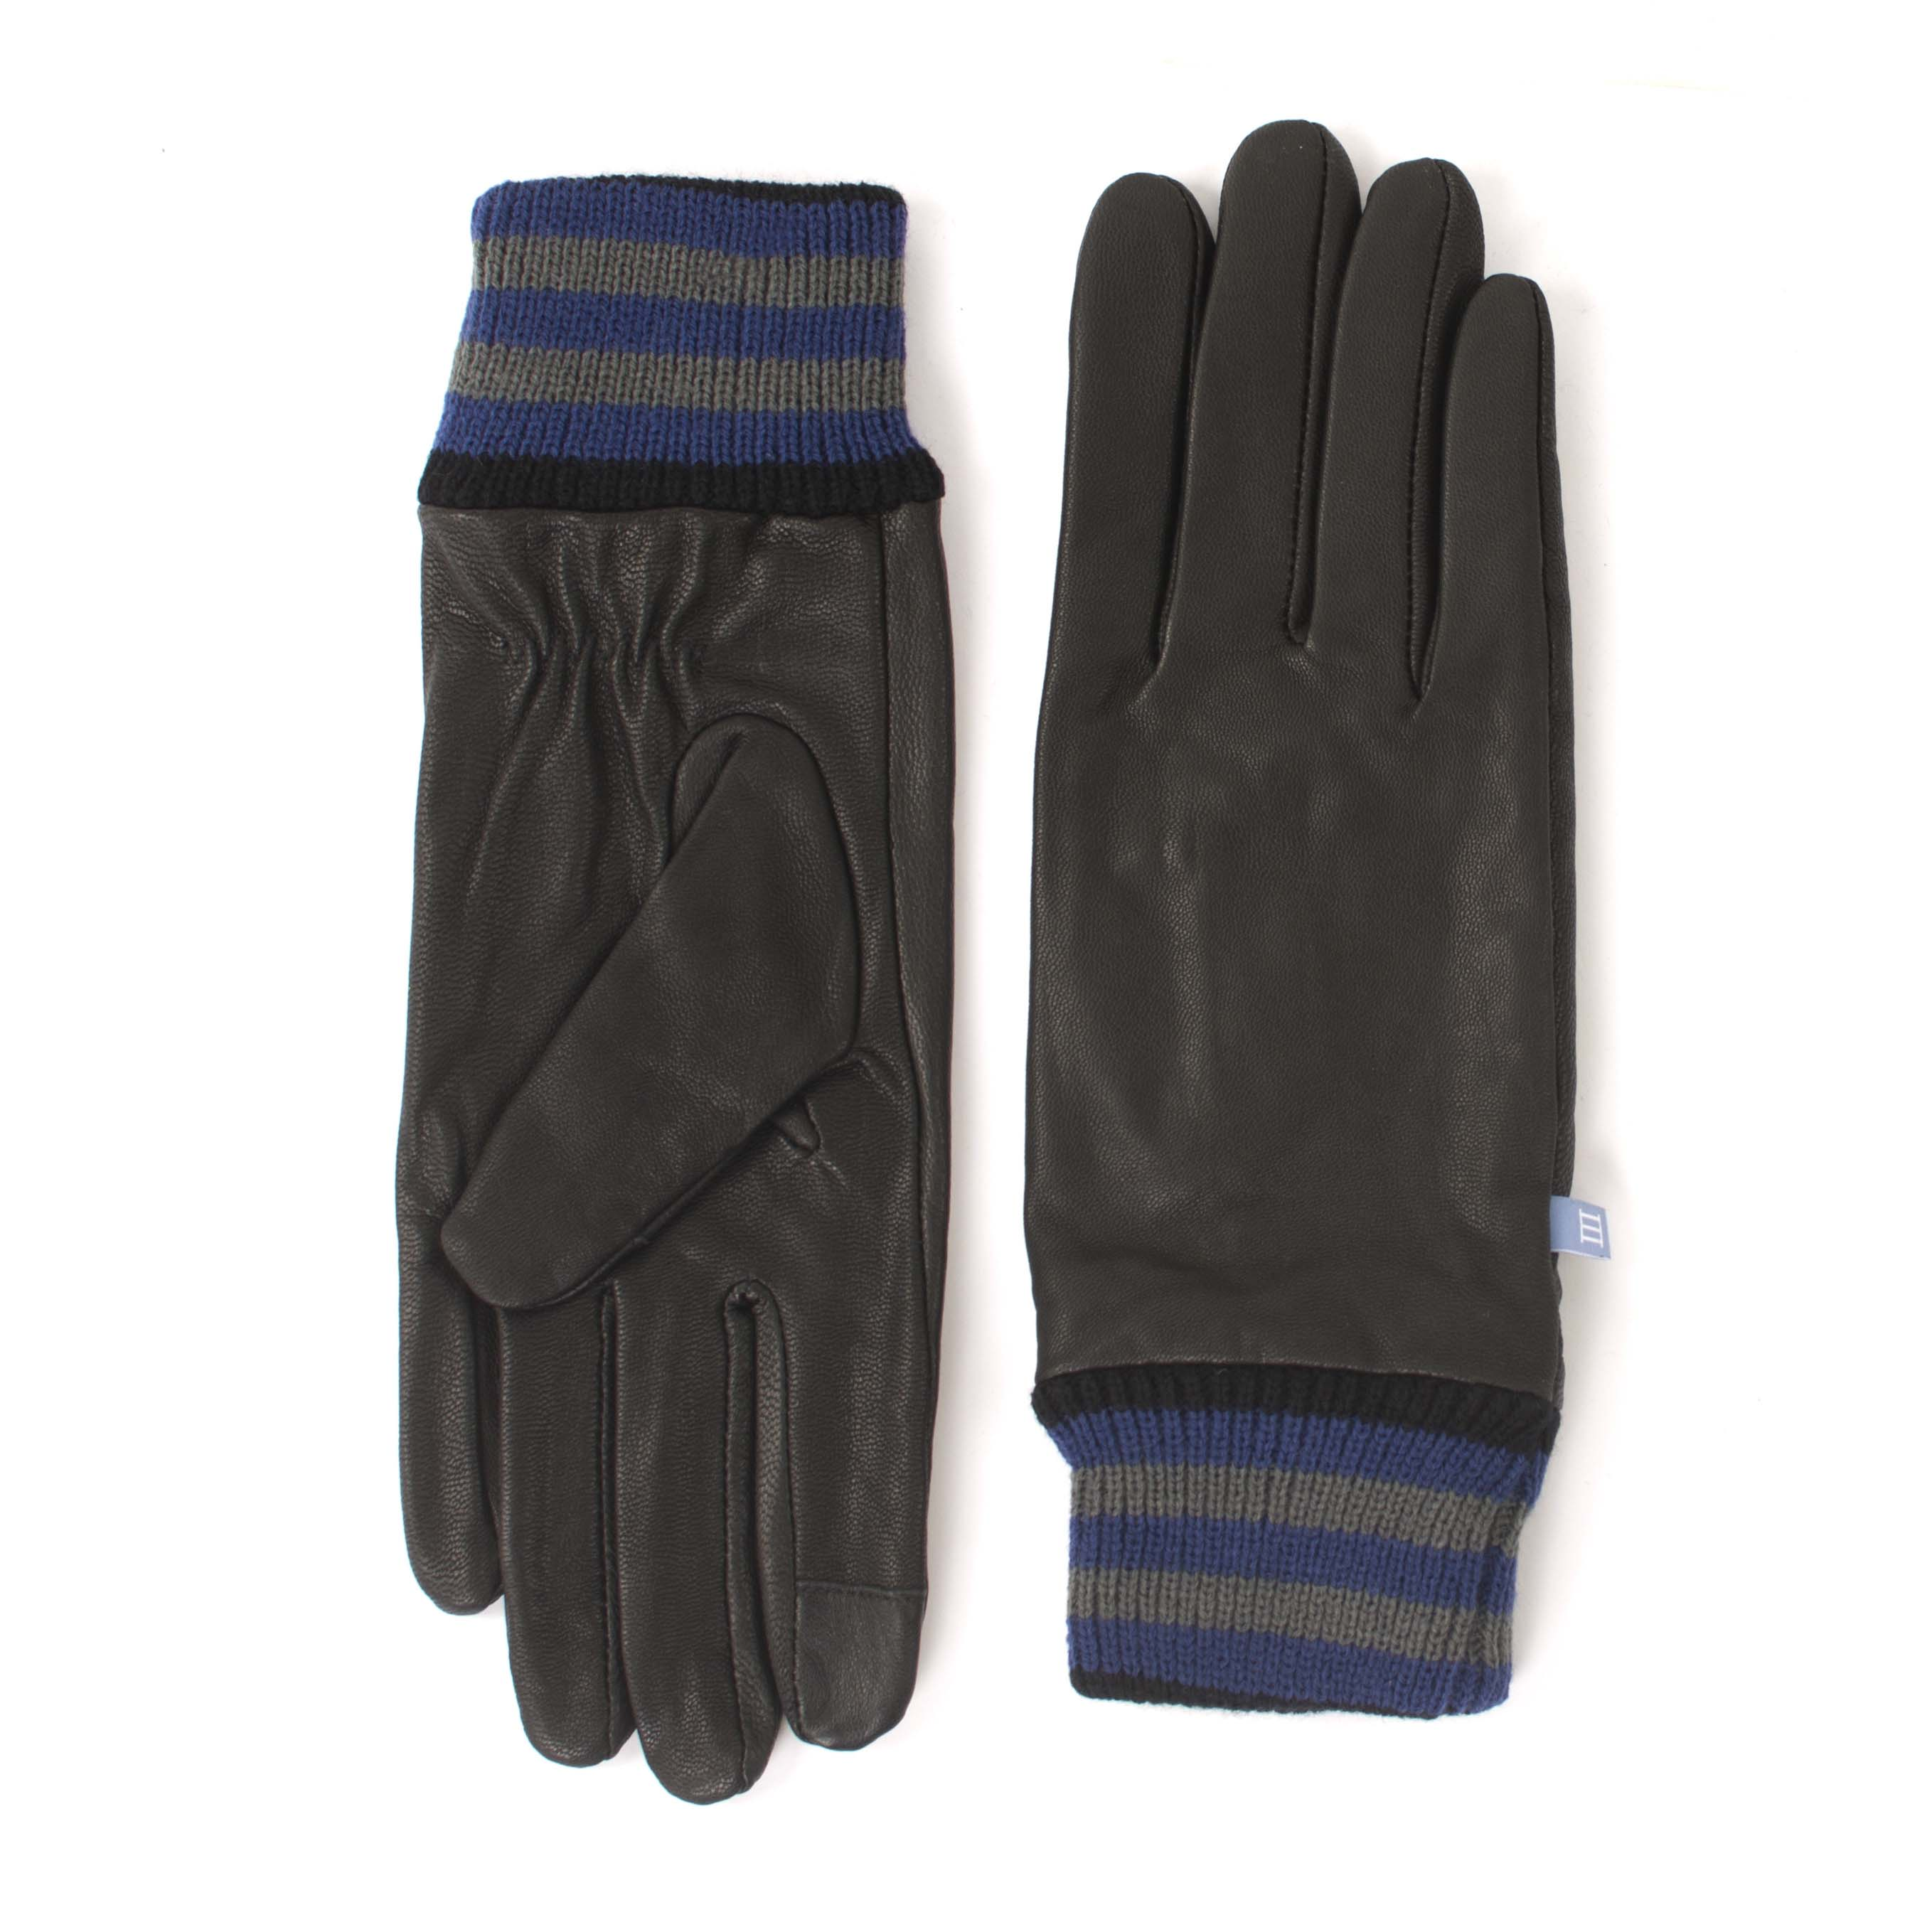 Black gloves with striped cuff and touchscreen fingertips